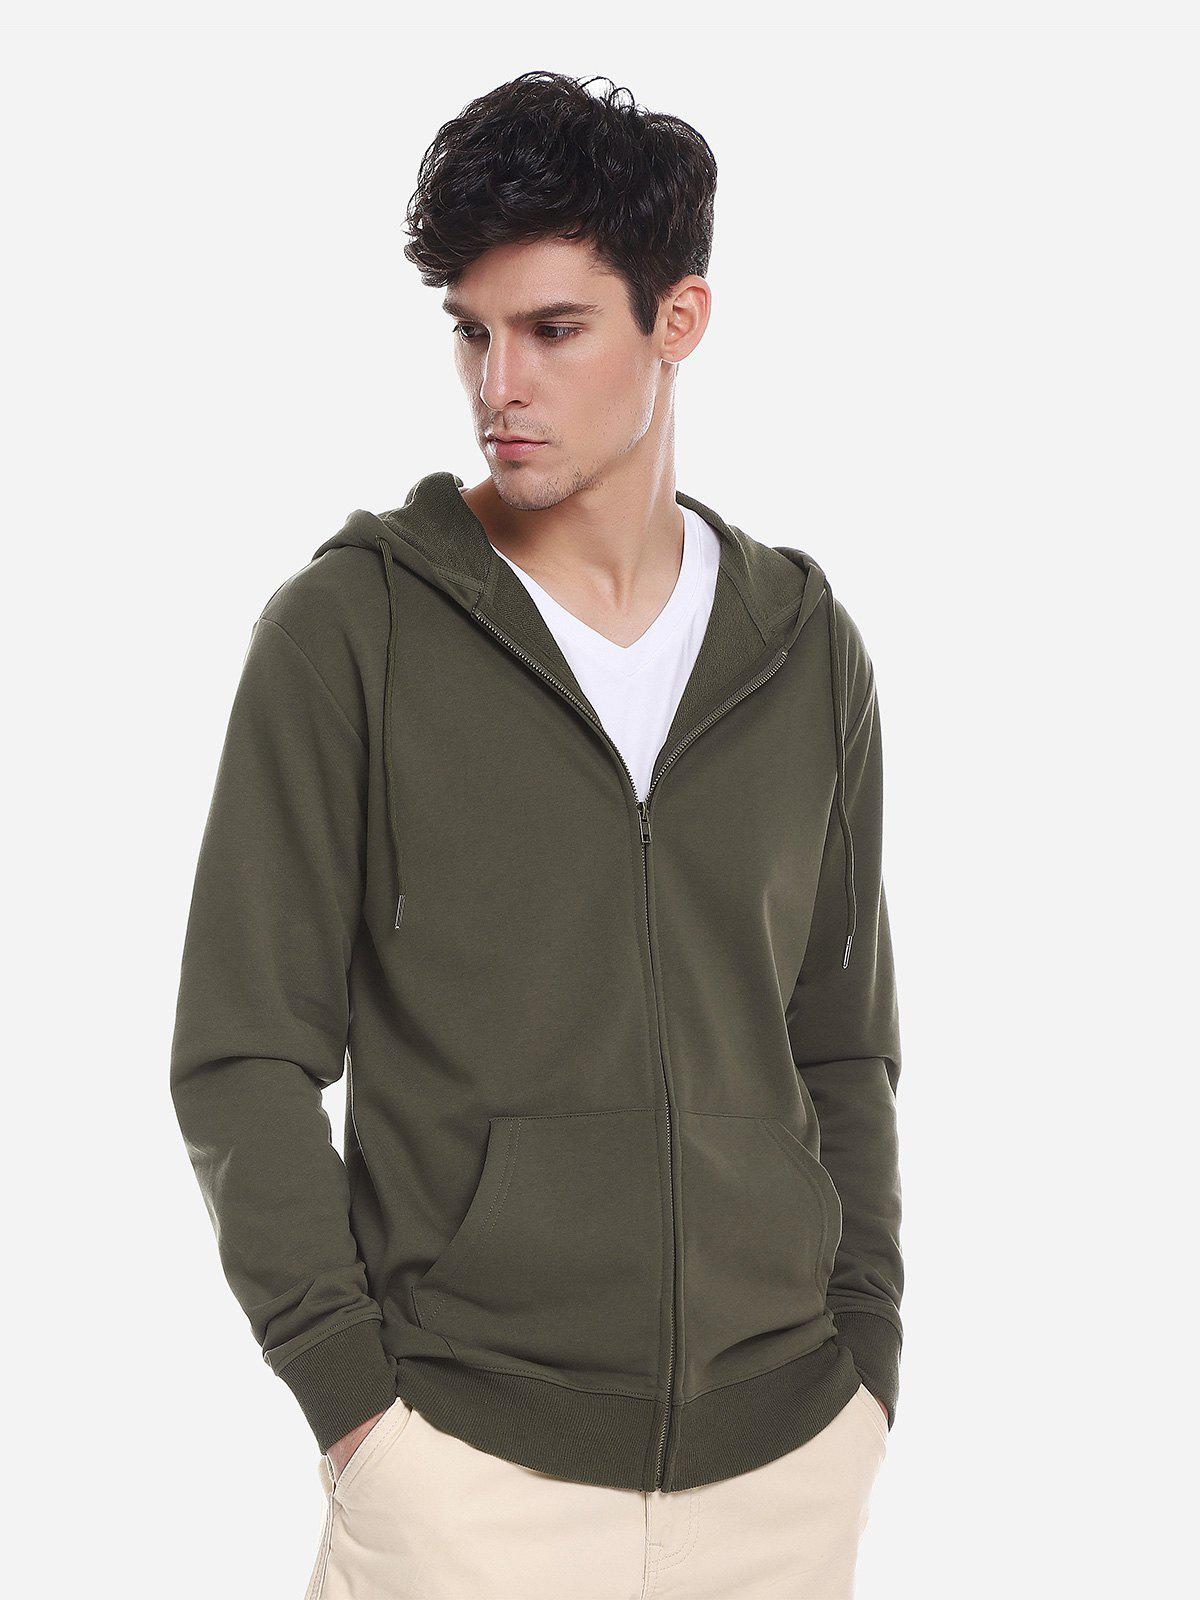 Fancy Pocket Hooded Sweatshirt